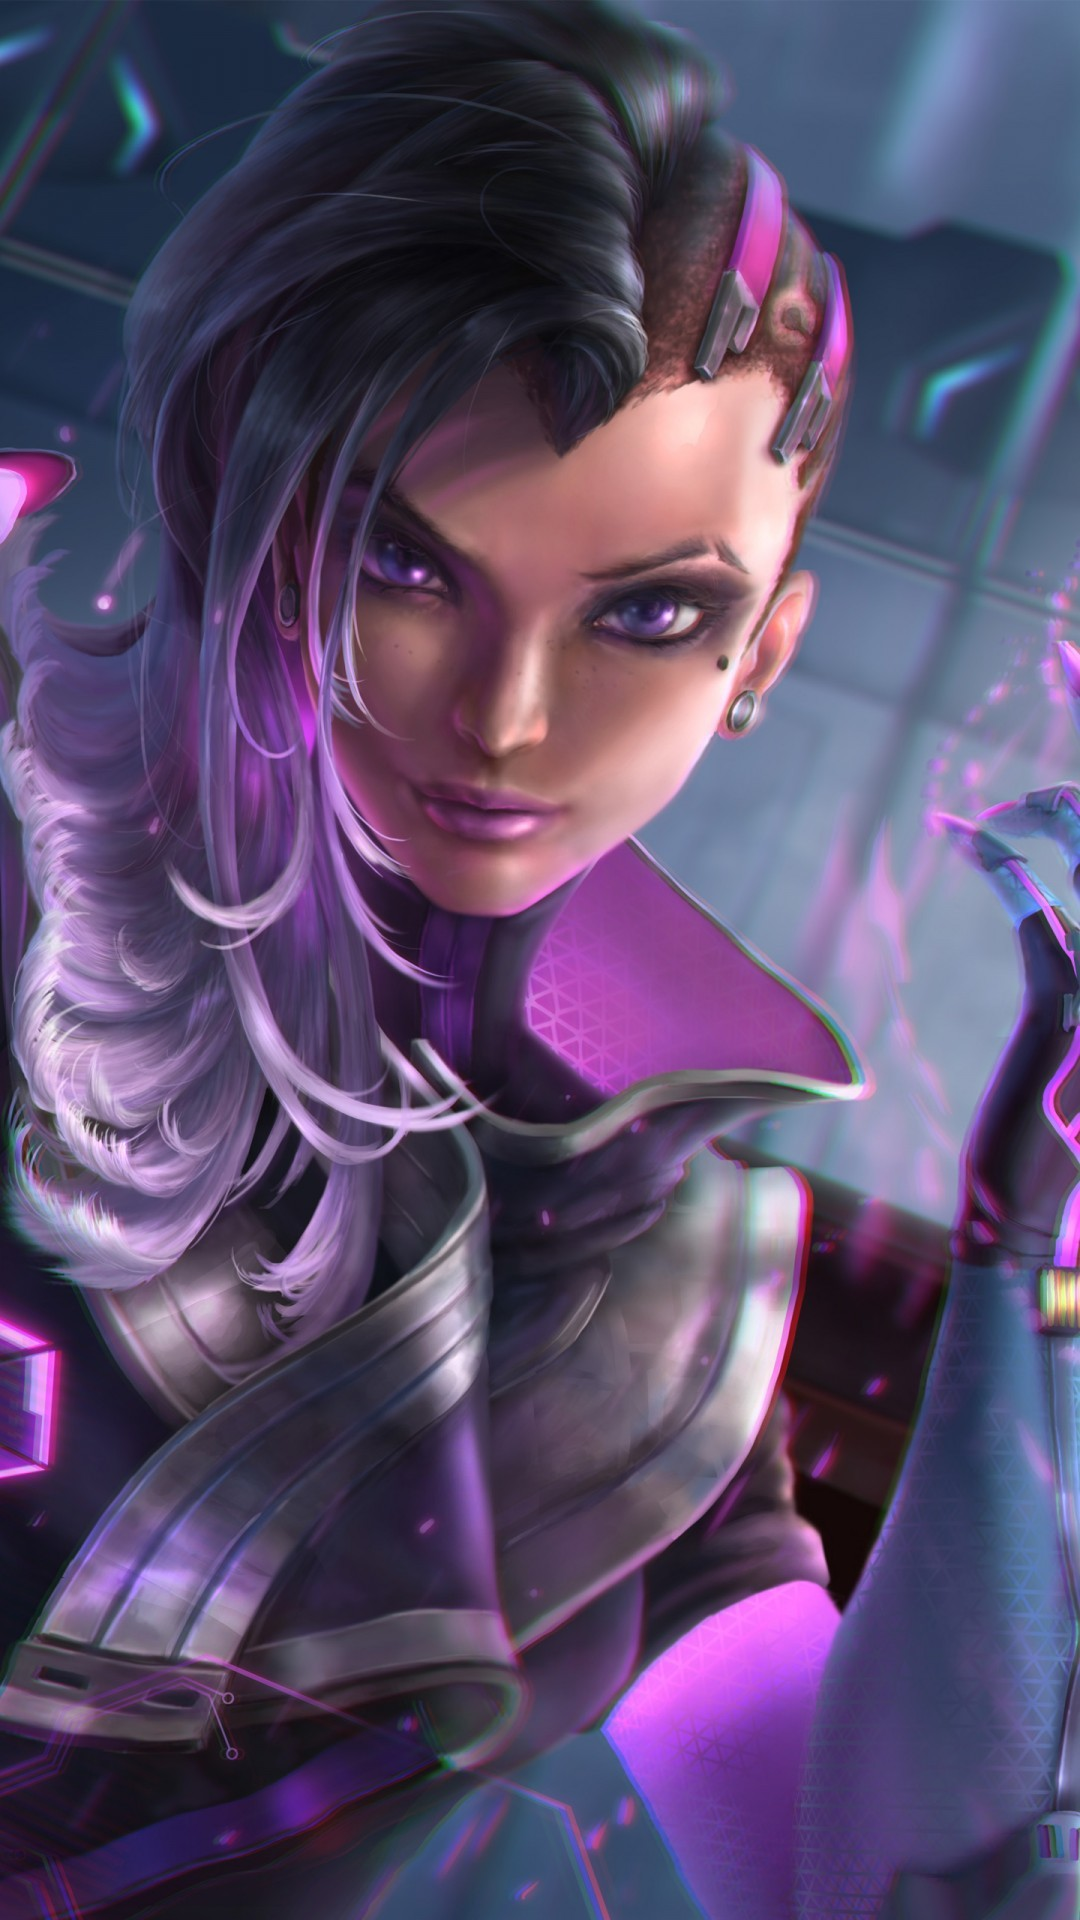 Free Sombra Overwatch Artwork phone wallpaper by lalato5